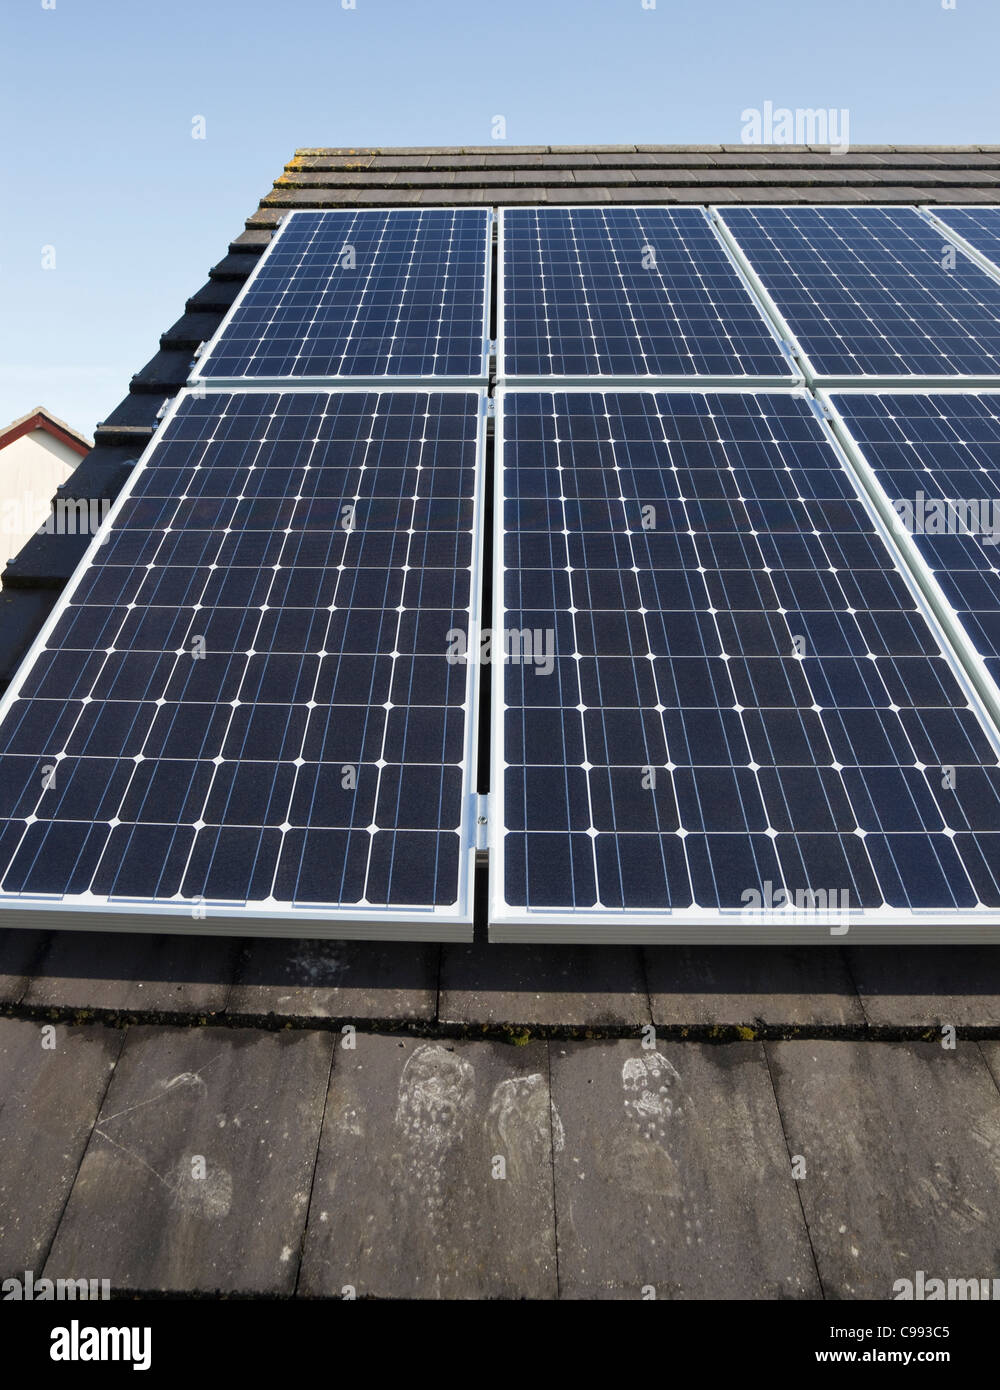 UK, Britain, Europe. Close-up of solar panels on a house roof. Stock Photo